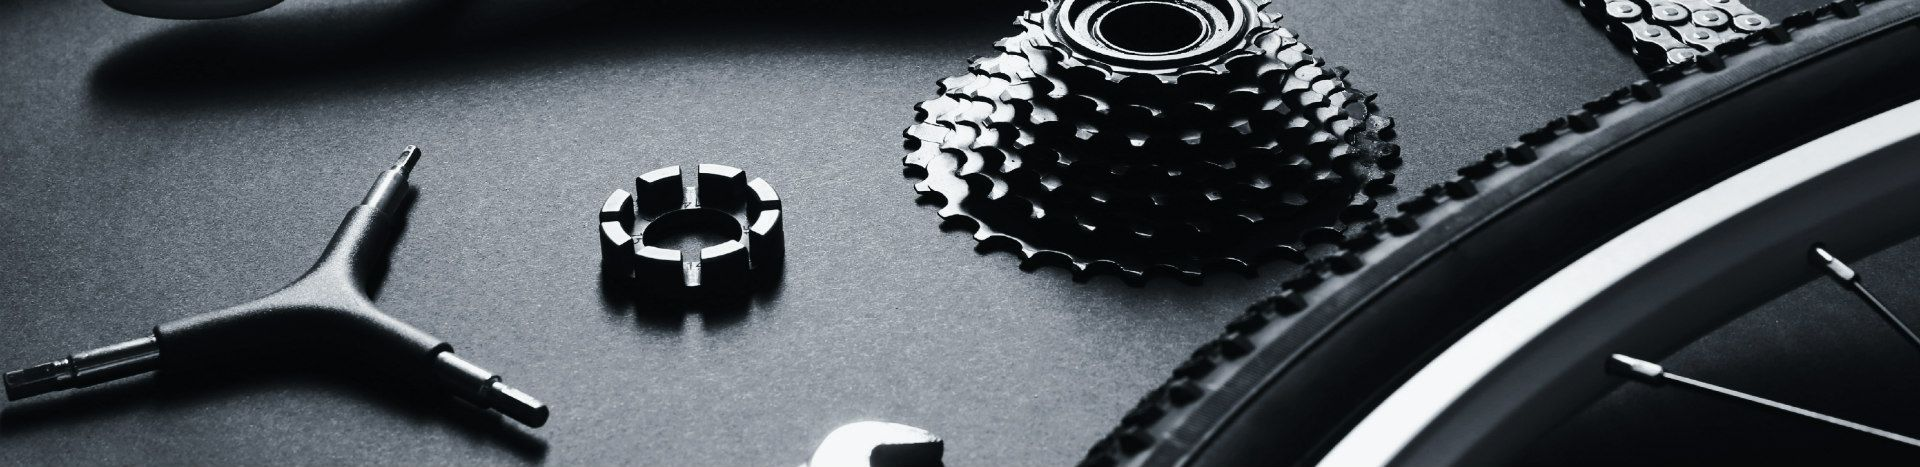 online bike groupsets